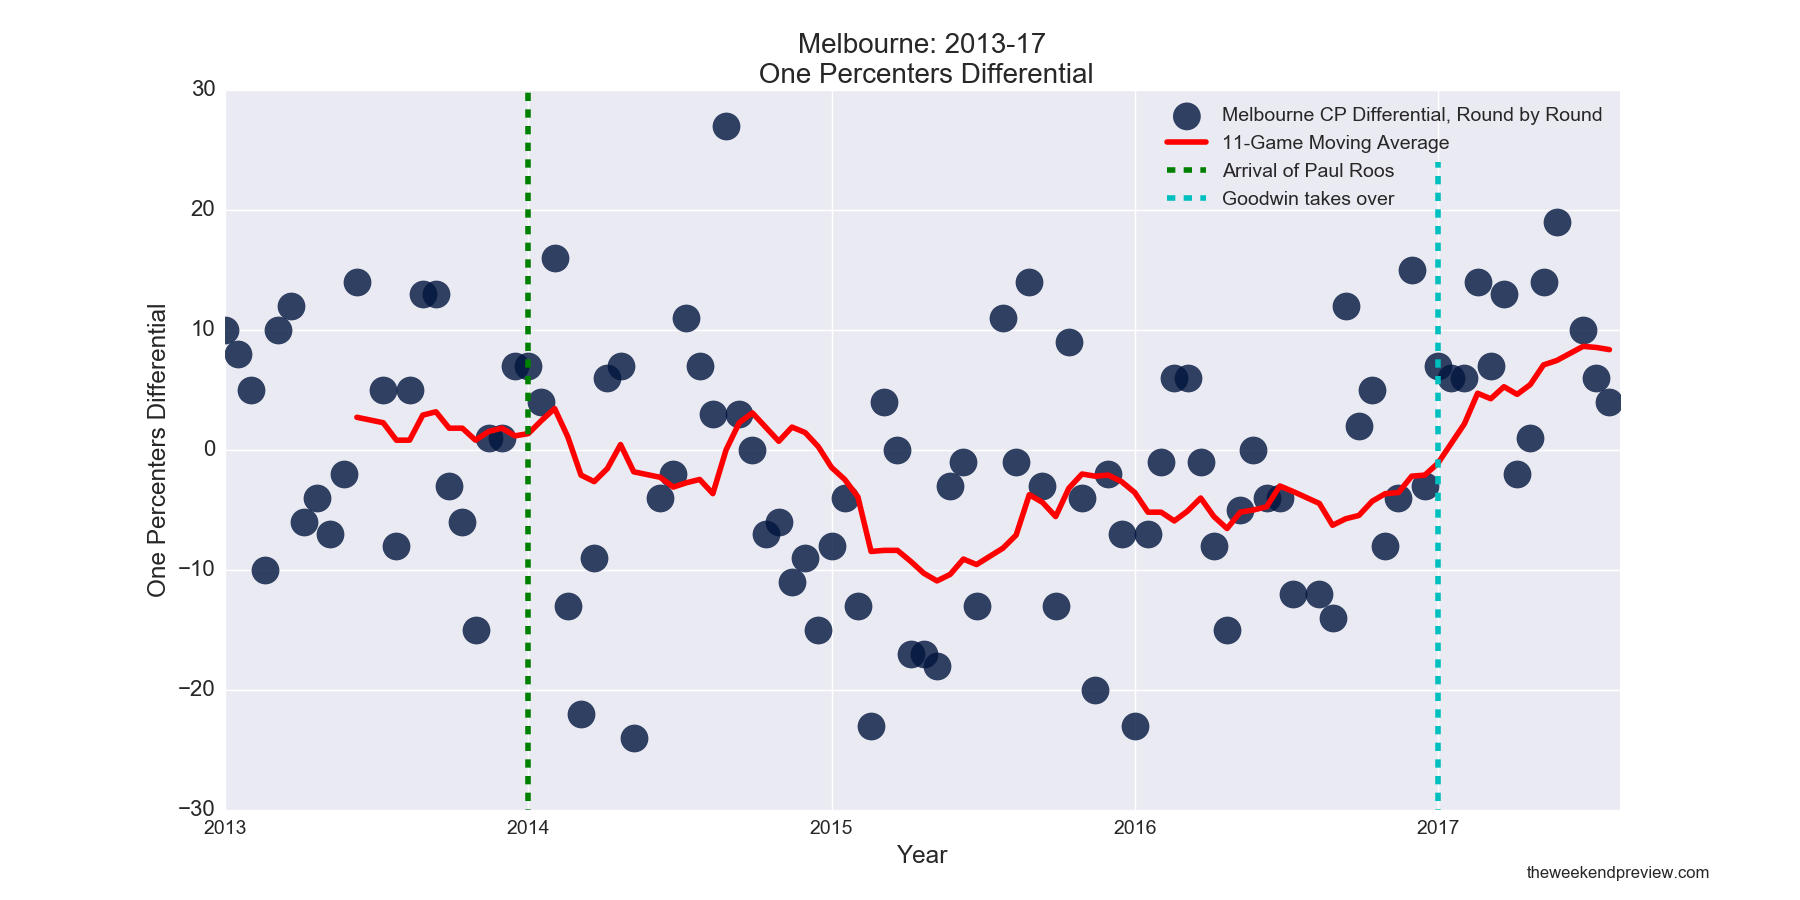 Figure-8: Melbourne One Percenters Differential in Paul Roos Era